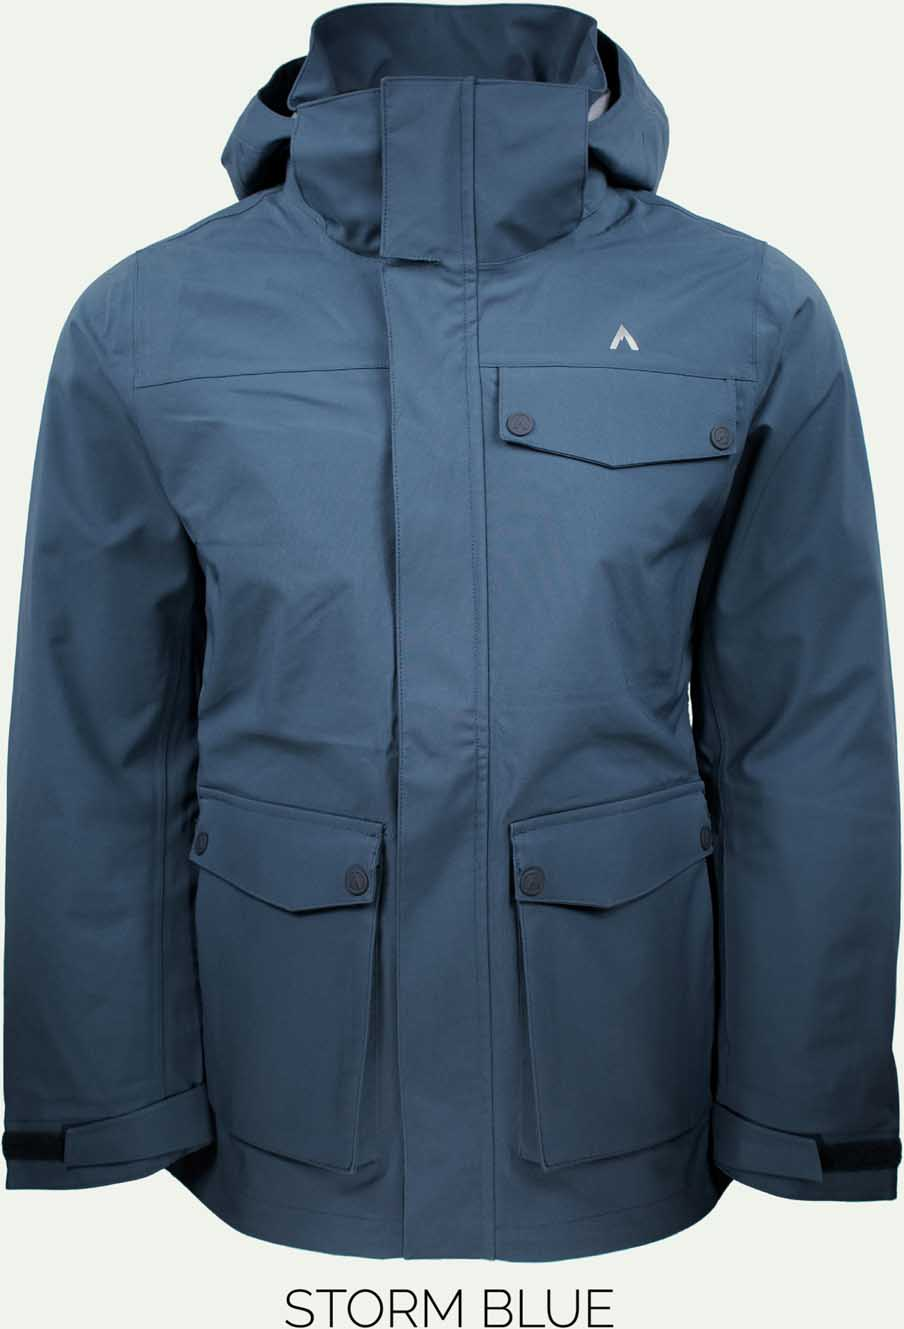 image terracea-peak-ltd-jacket-storm-blue-jpg